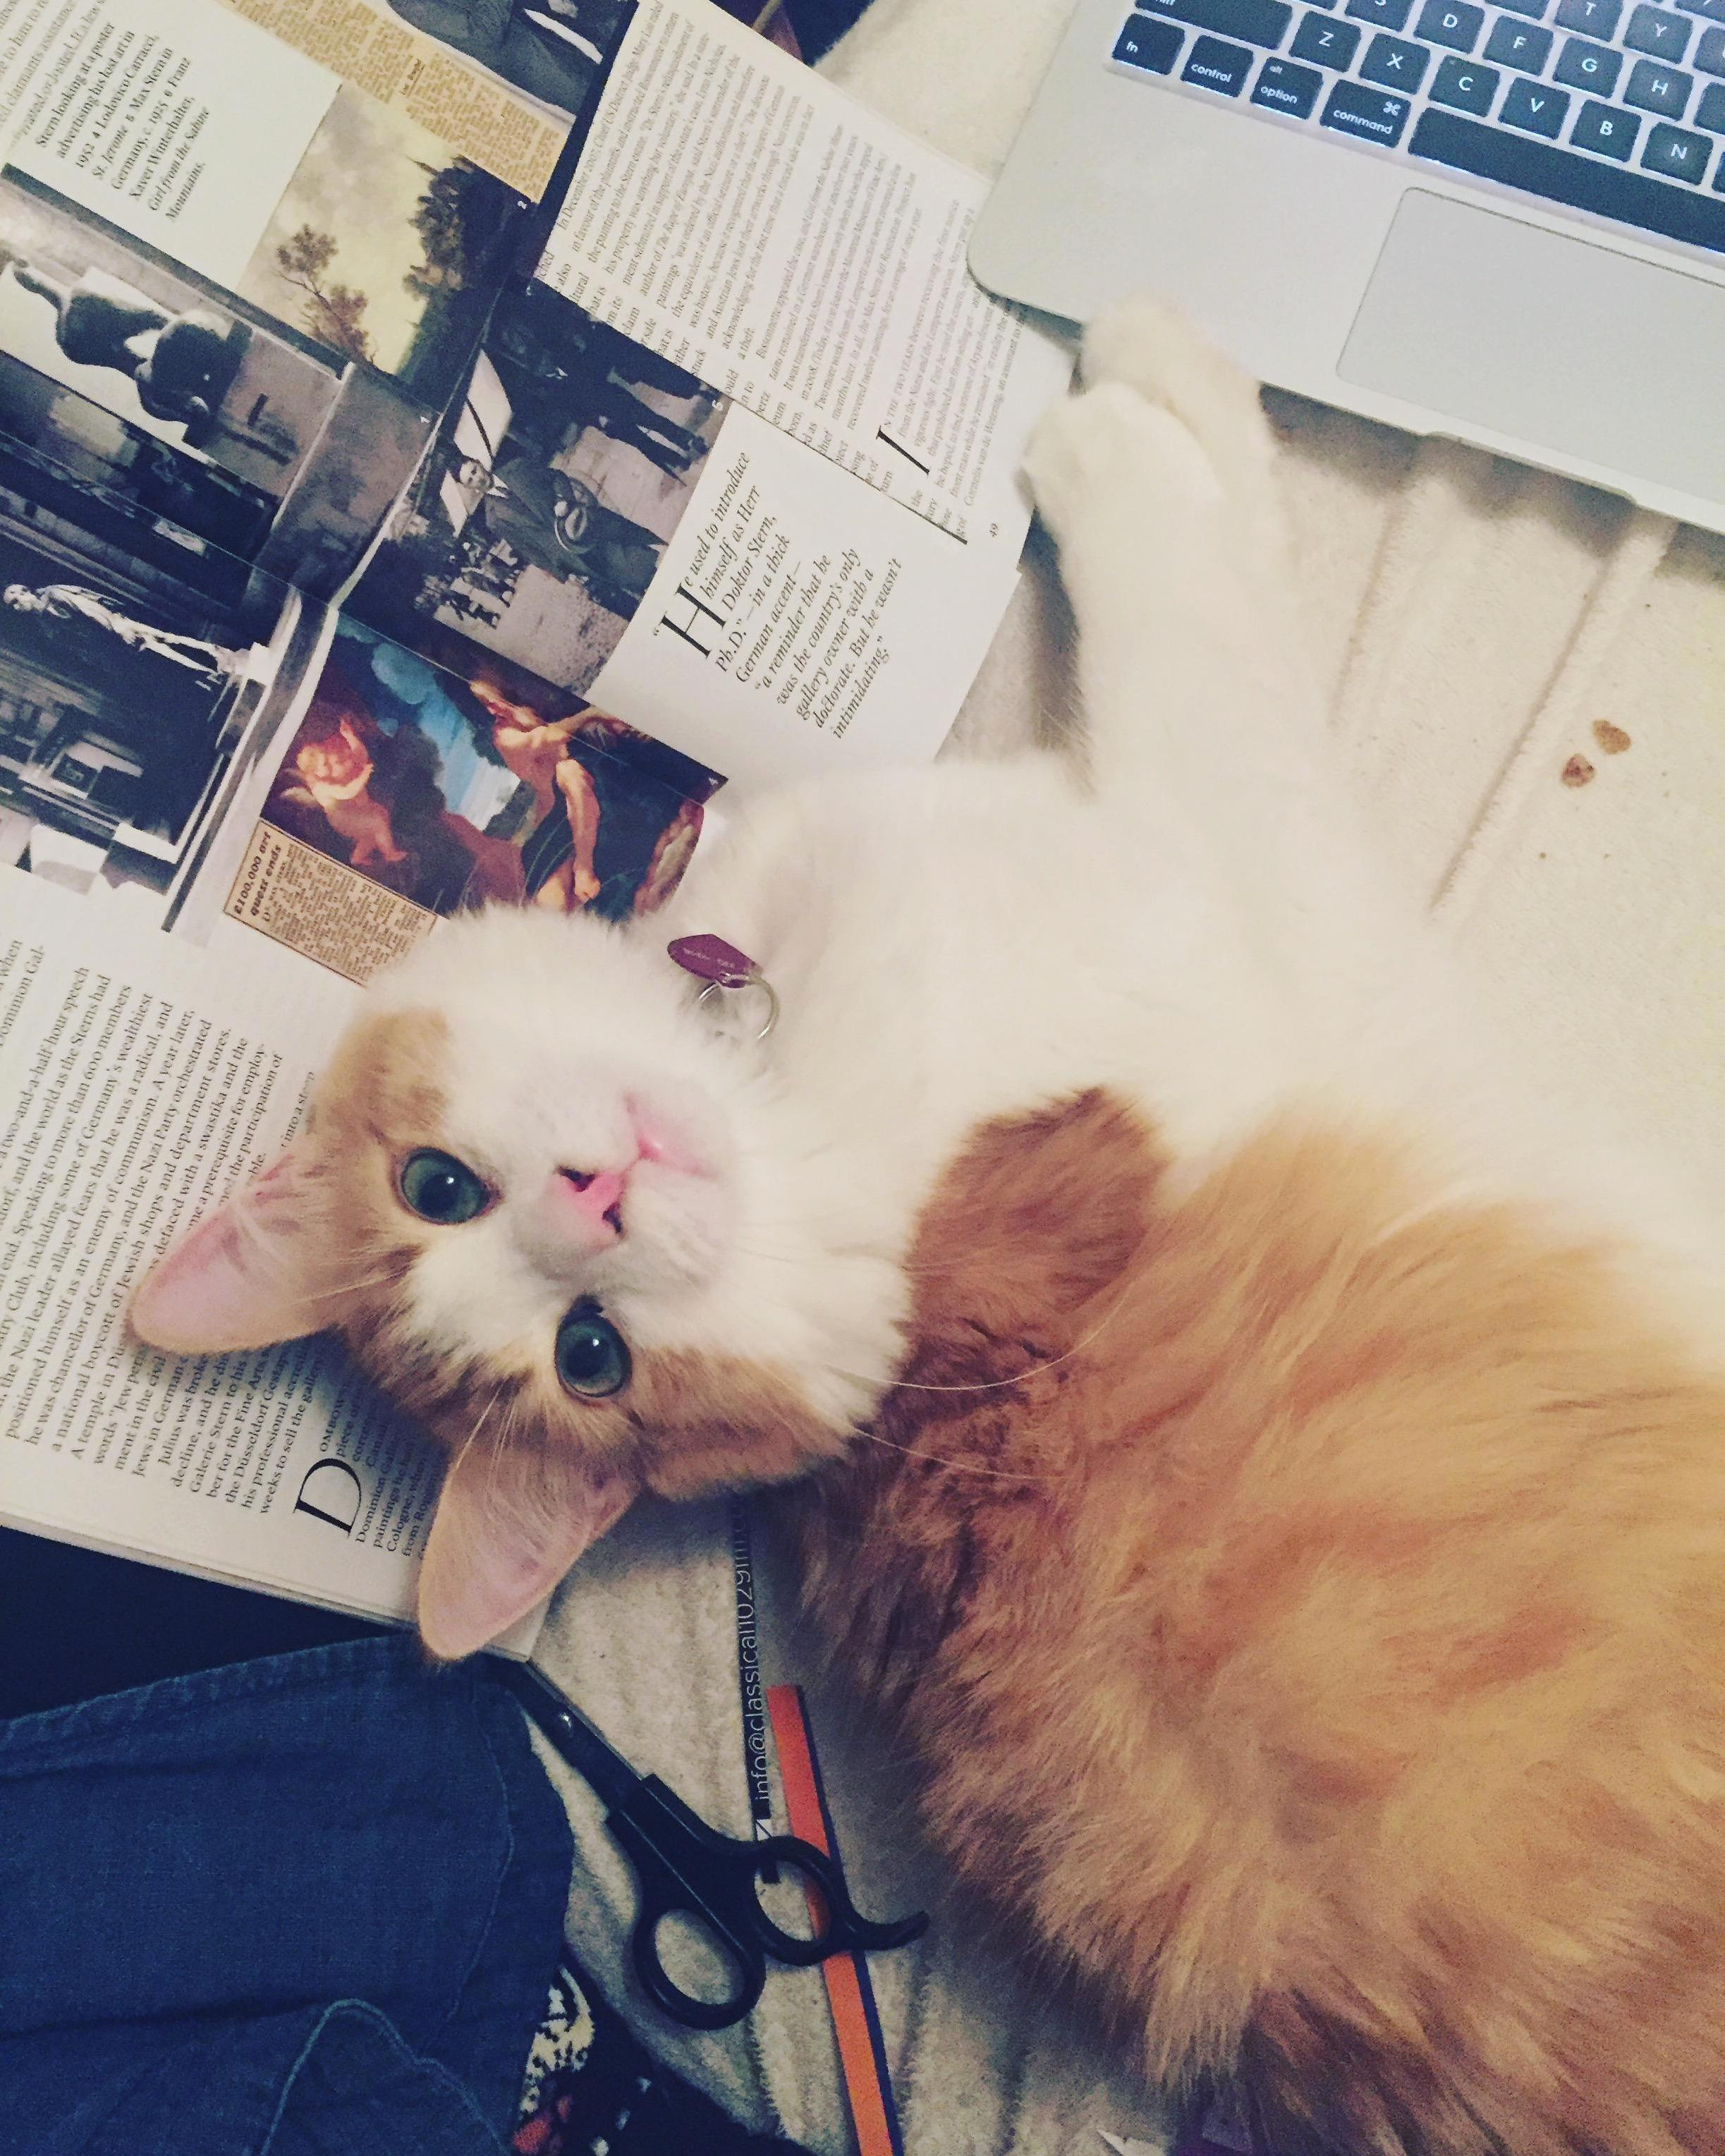 Trying to cut up magazines for a collage. gulliver decided hed rather get attention.